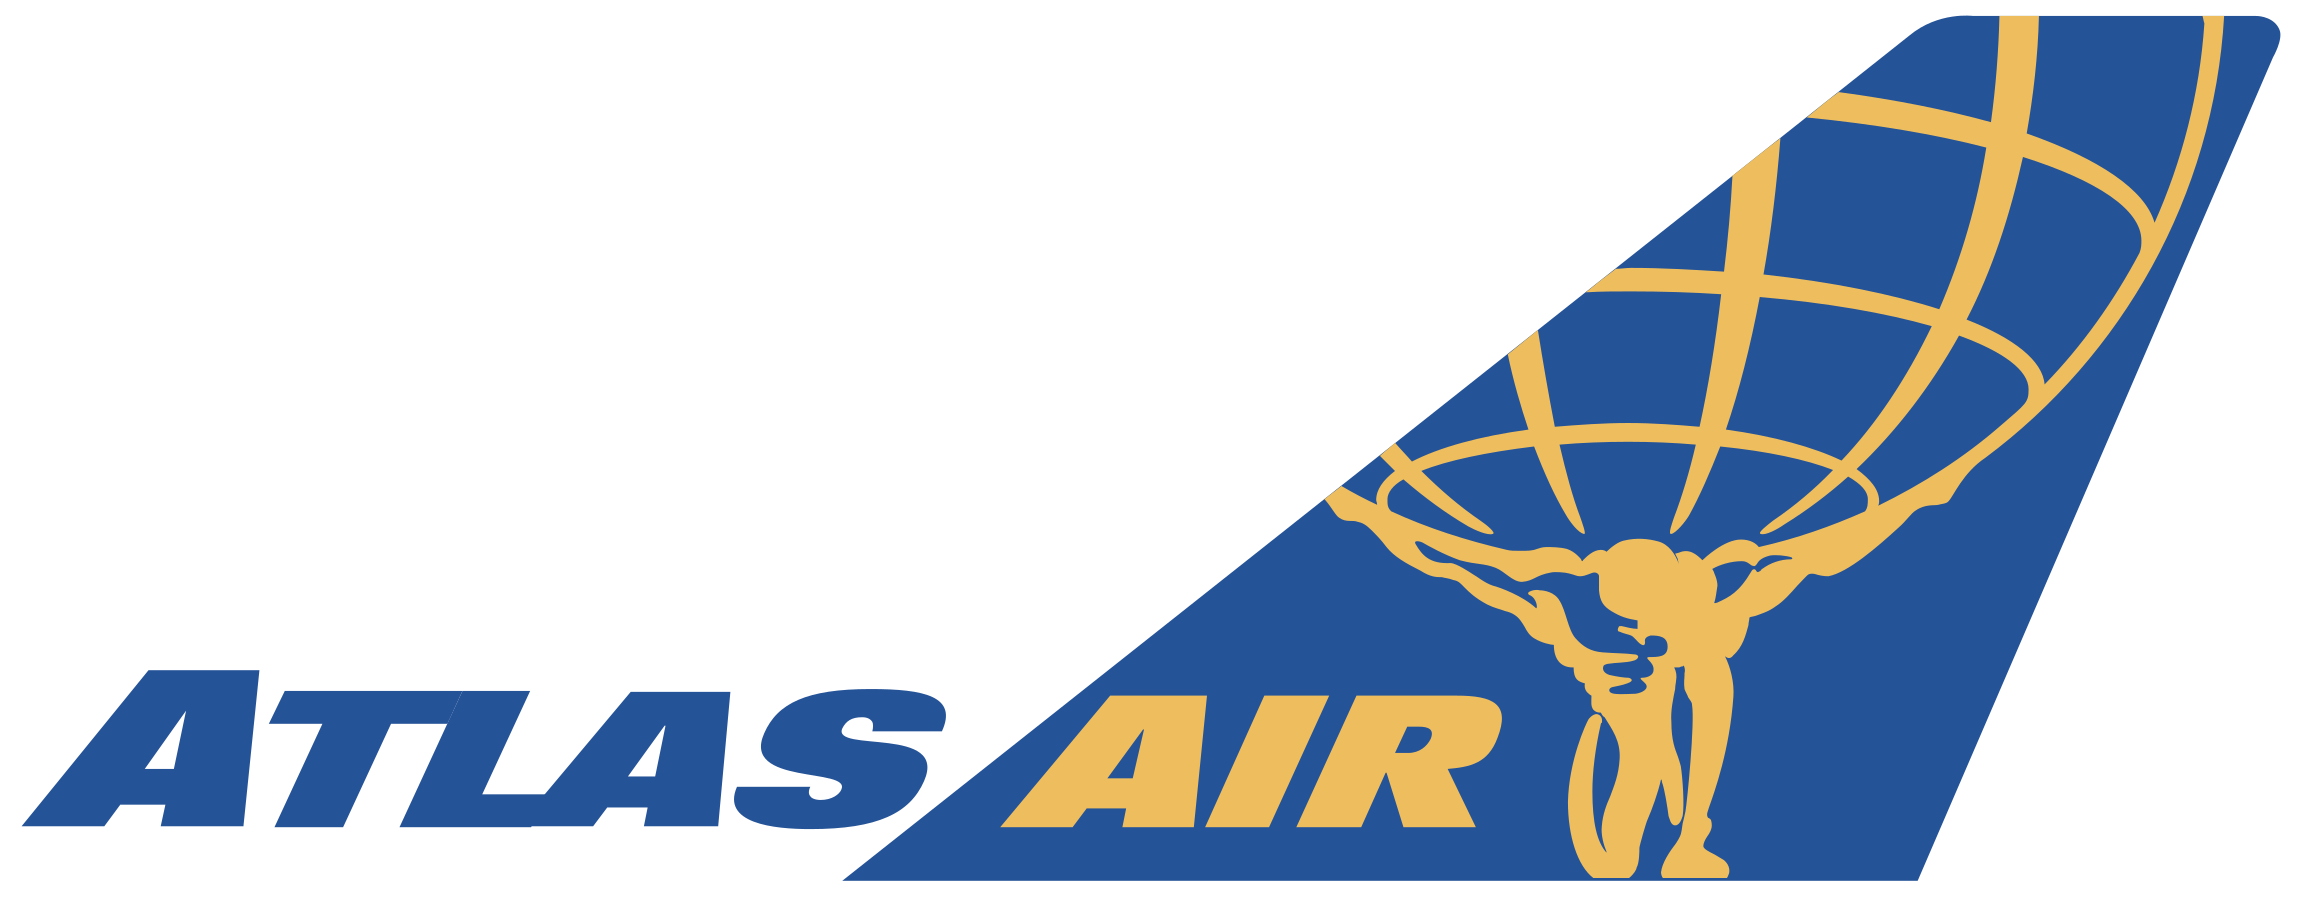 Atlas Air_Isologotype